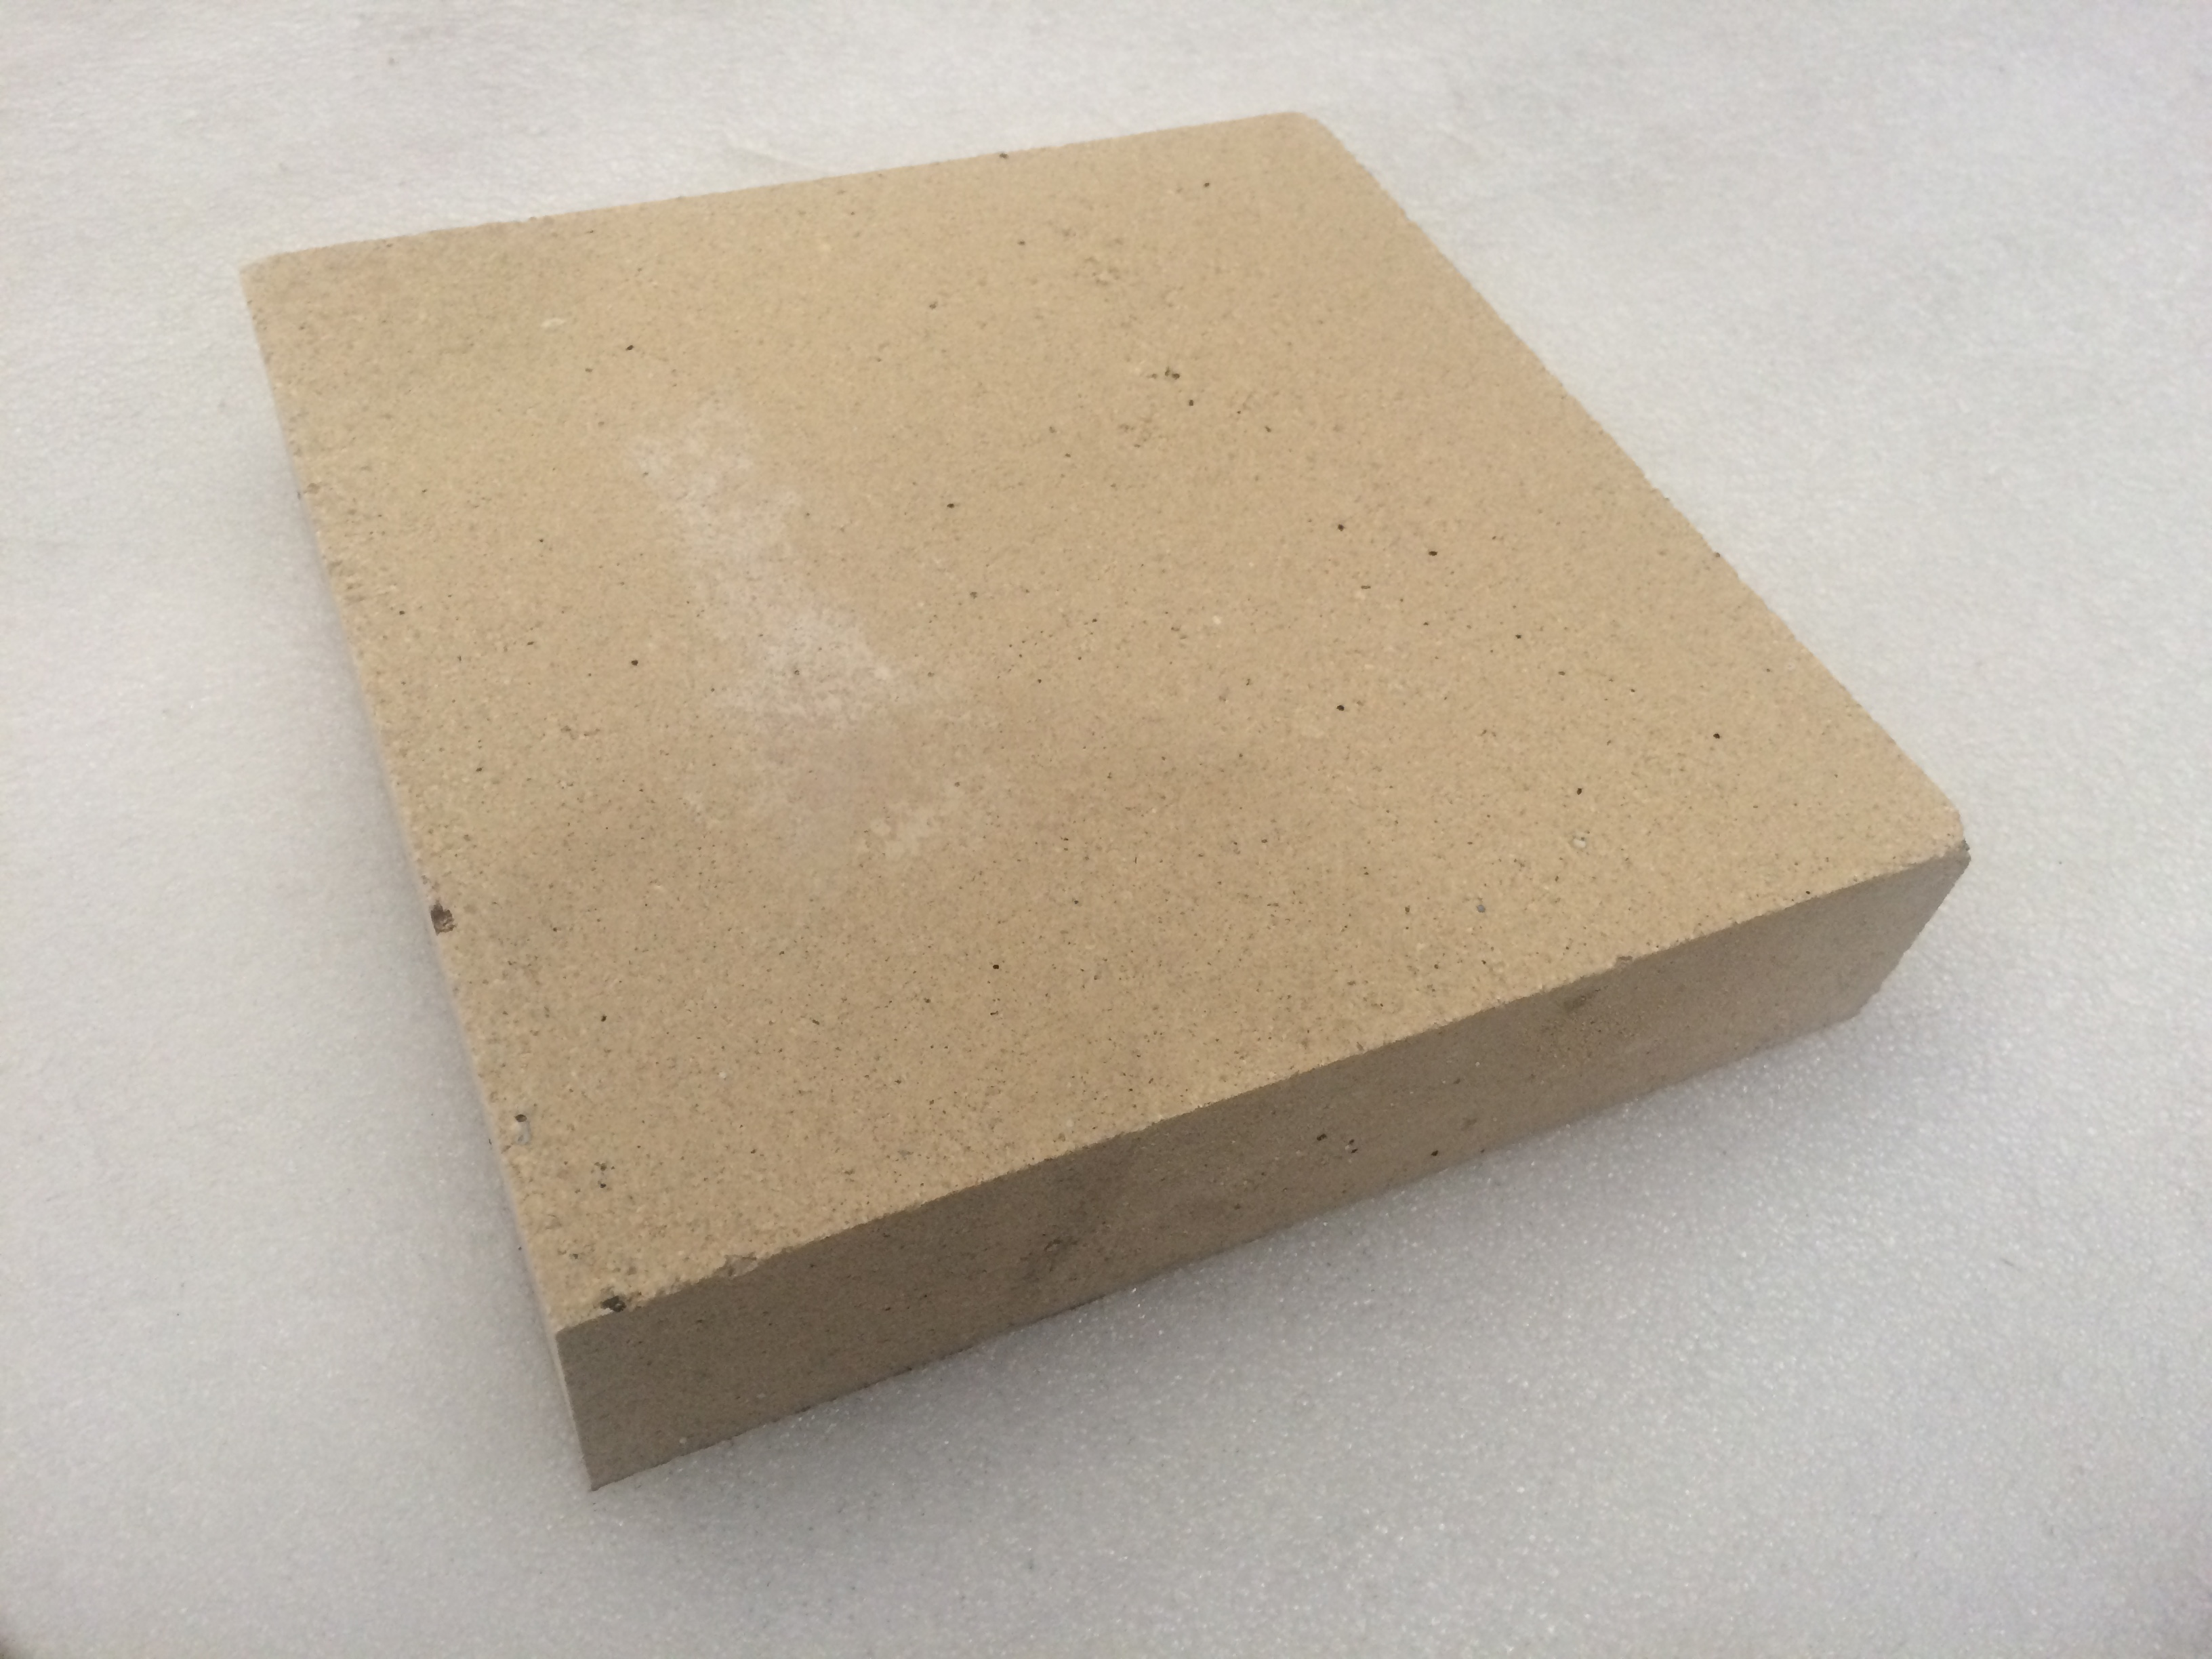 Refractory Brick Wood Fired Oven Fire Brick Tile 1al26163 7 70 Field Furnace